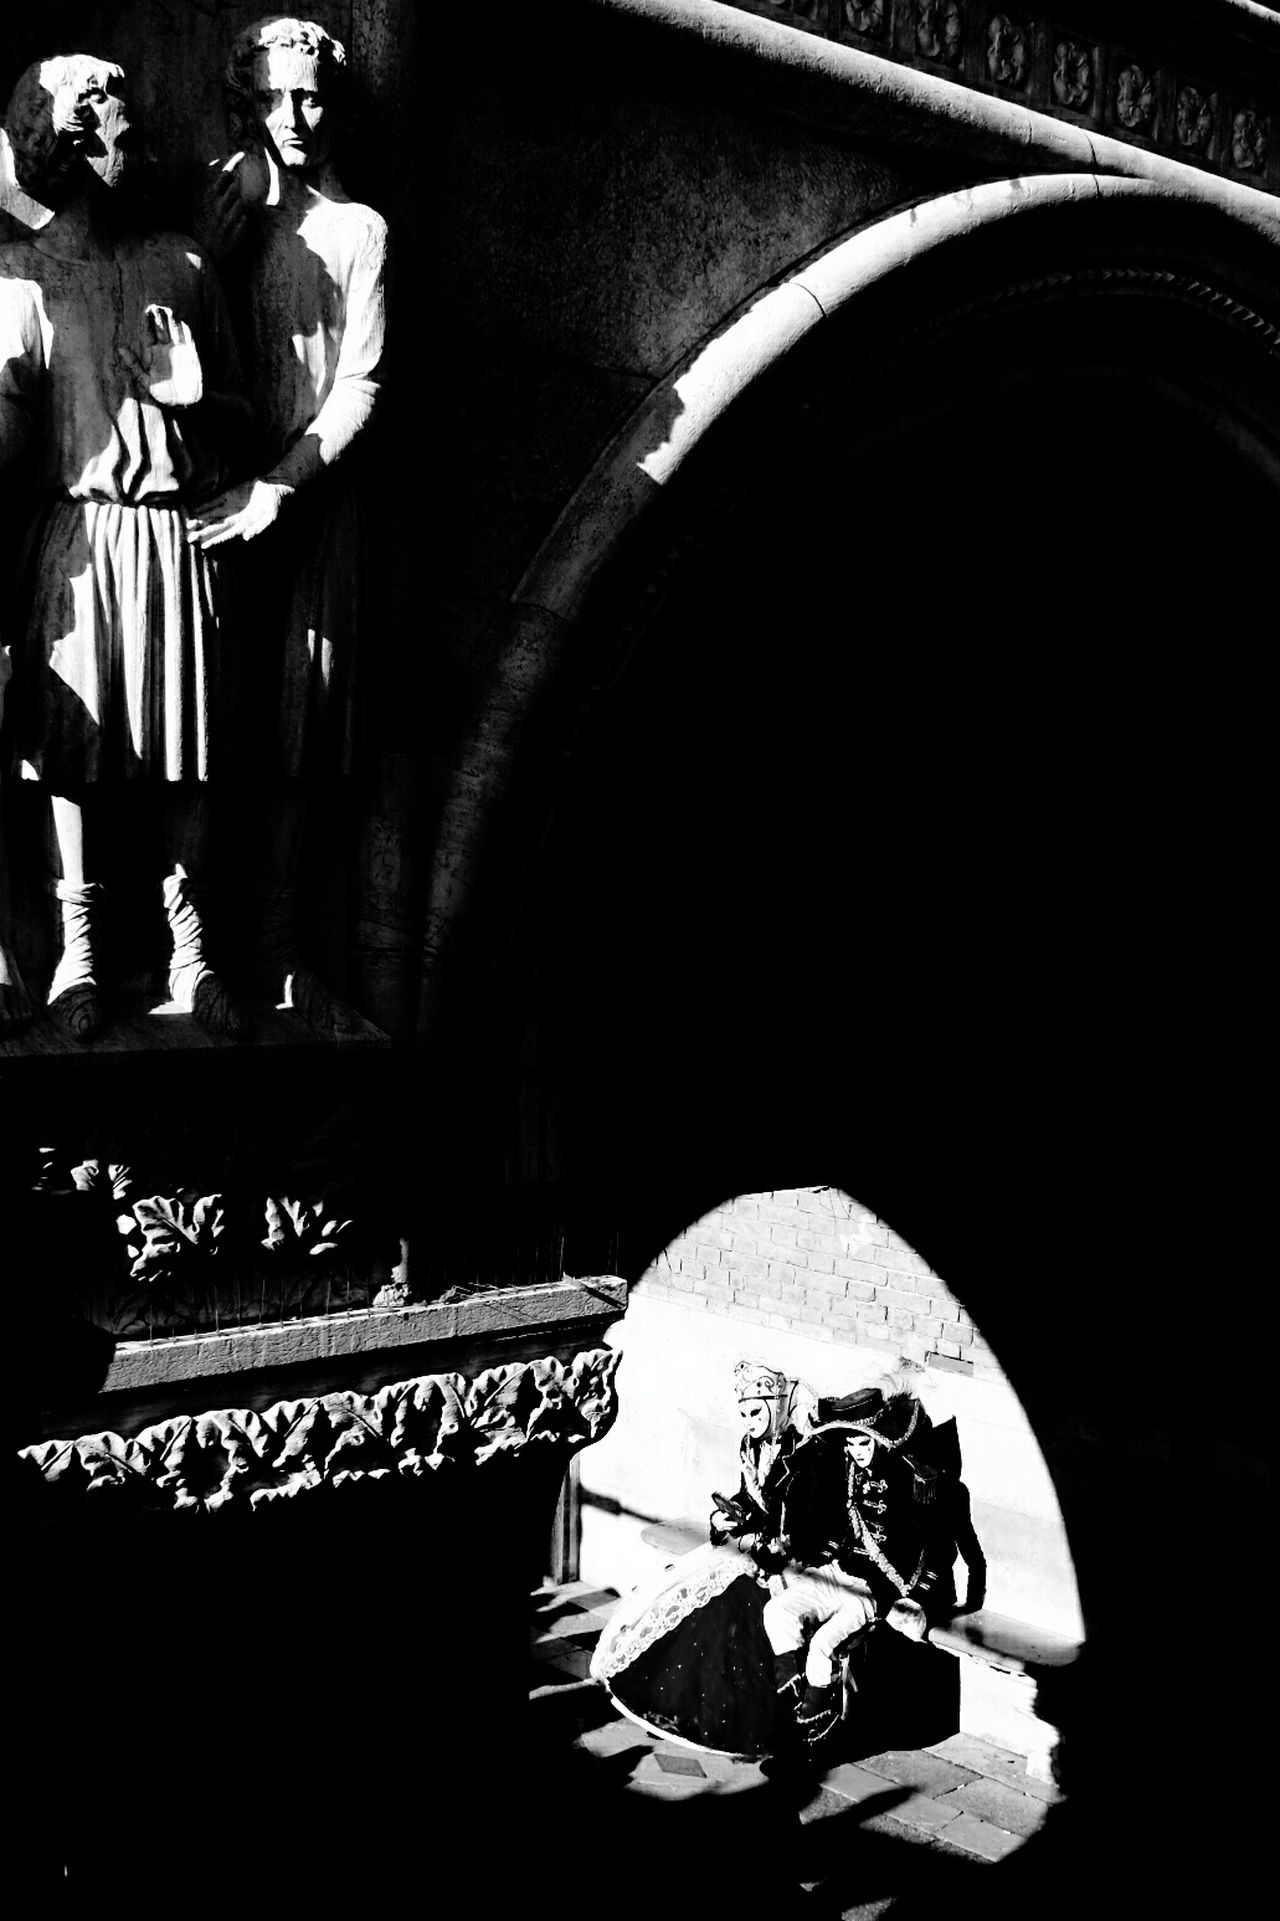 Creative Light And Shadow Light And Shadow Black And White Venice Carnival Black&white Old Foto  Original Photography Dreams Blackandwhite Photography Thinking About Life Melancholic Landscapes Carnival 2016 Venice, Italy Couples Couples❤❤❤ Couples Shoot Lovers Masked Venezia #venice Carnavaledivenezia Carnavales Venicecarnival